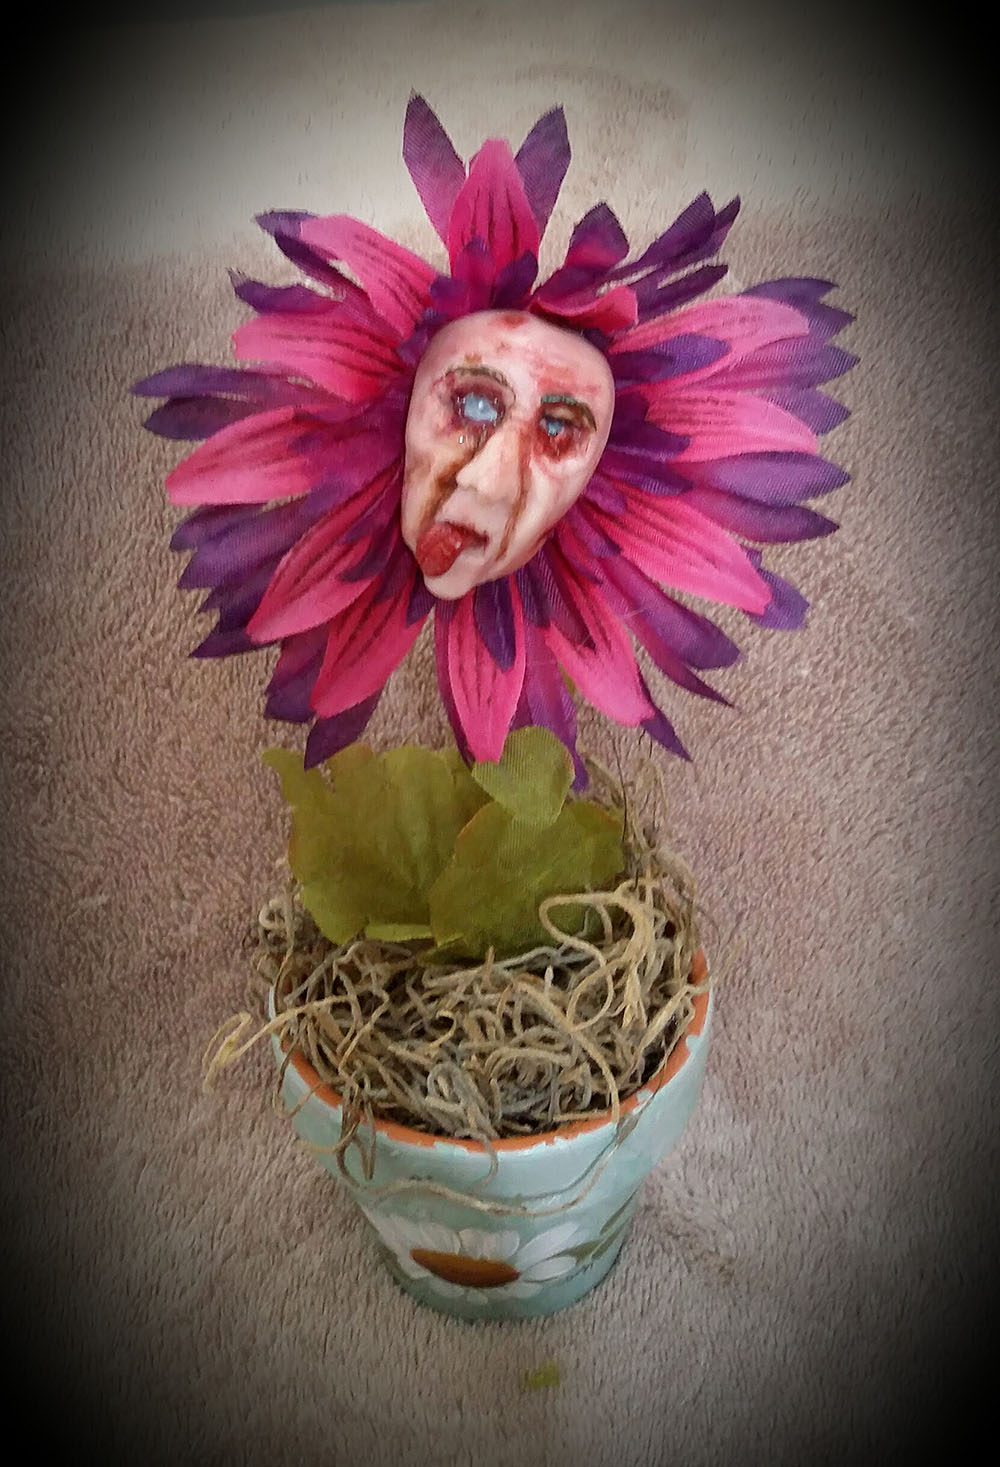 Zombie flower by Tina Parsons